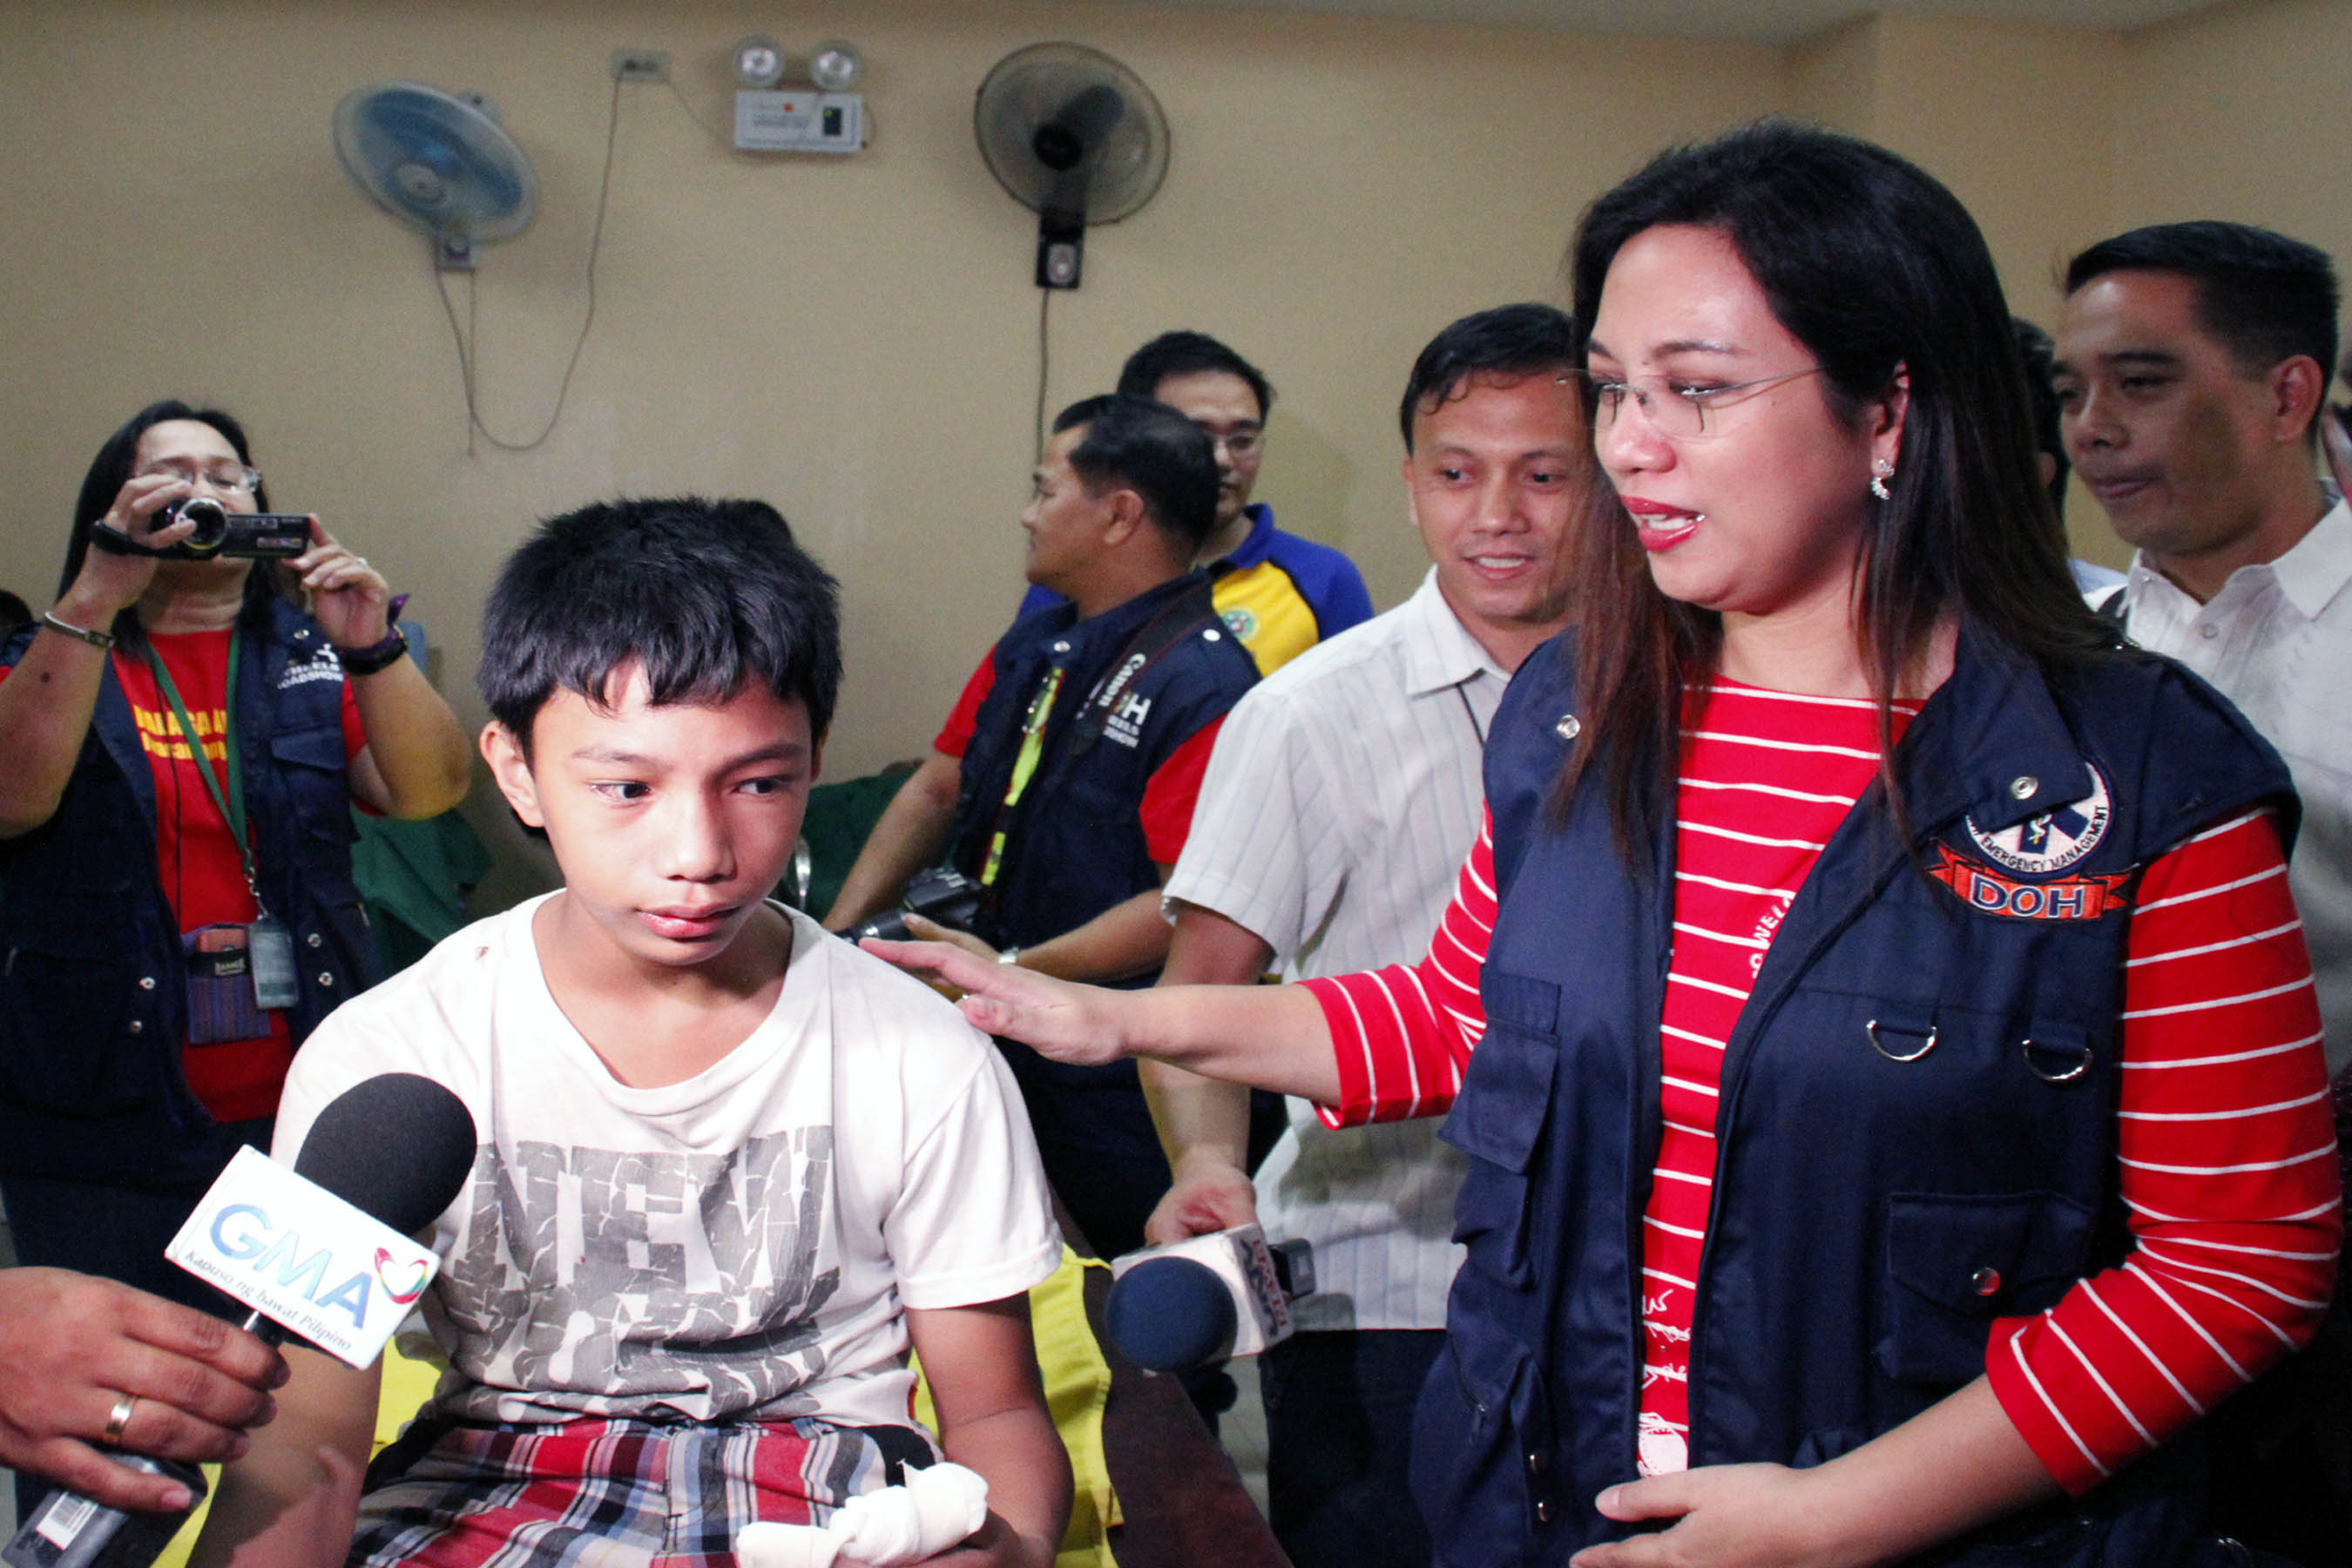 Department of Health (DOH) Acting Secretary Janette L. Garin comforts 13-year-old Justin Garcia who is confined at the Philippine Orthopedic Center (POC) in Quezon City after he was injured in a piccolo firecracker explosion. Dr. Garin visited the POC on New Year's Eve Wednesday (Dec. 31, 2014). (PNA photo by Joey O. Razon)